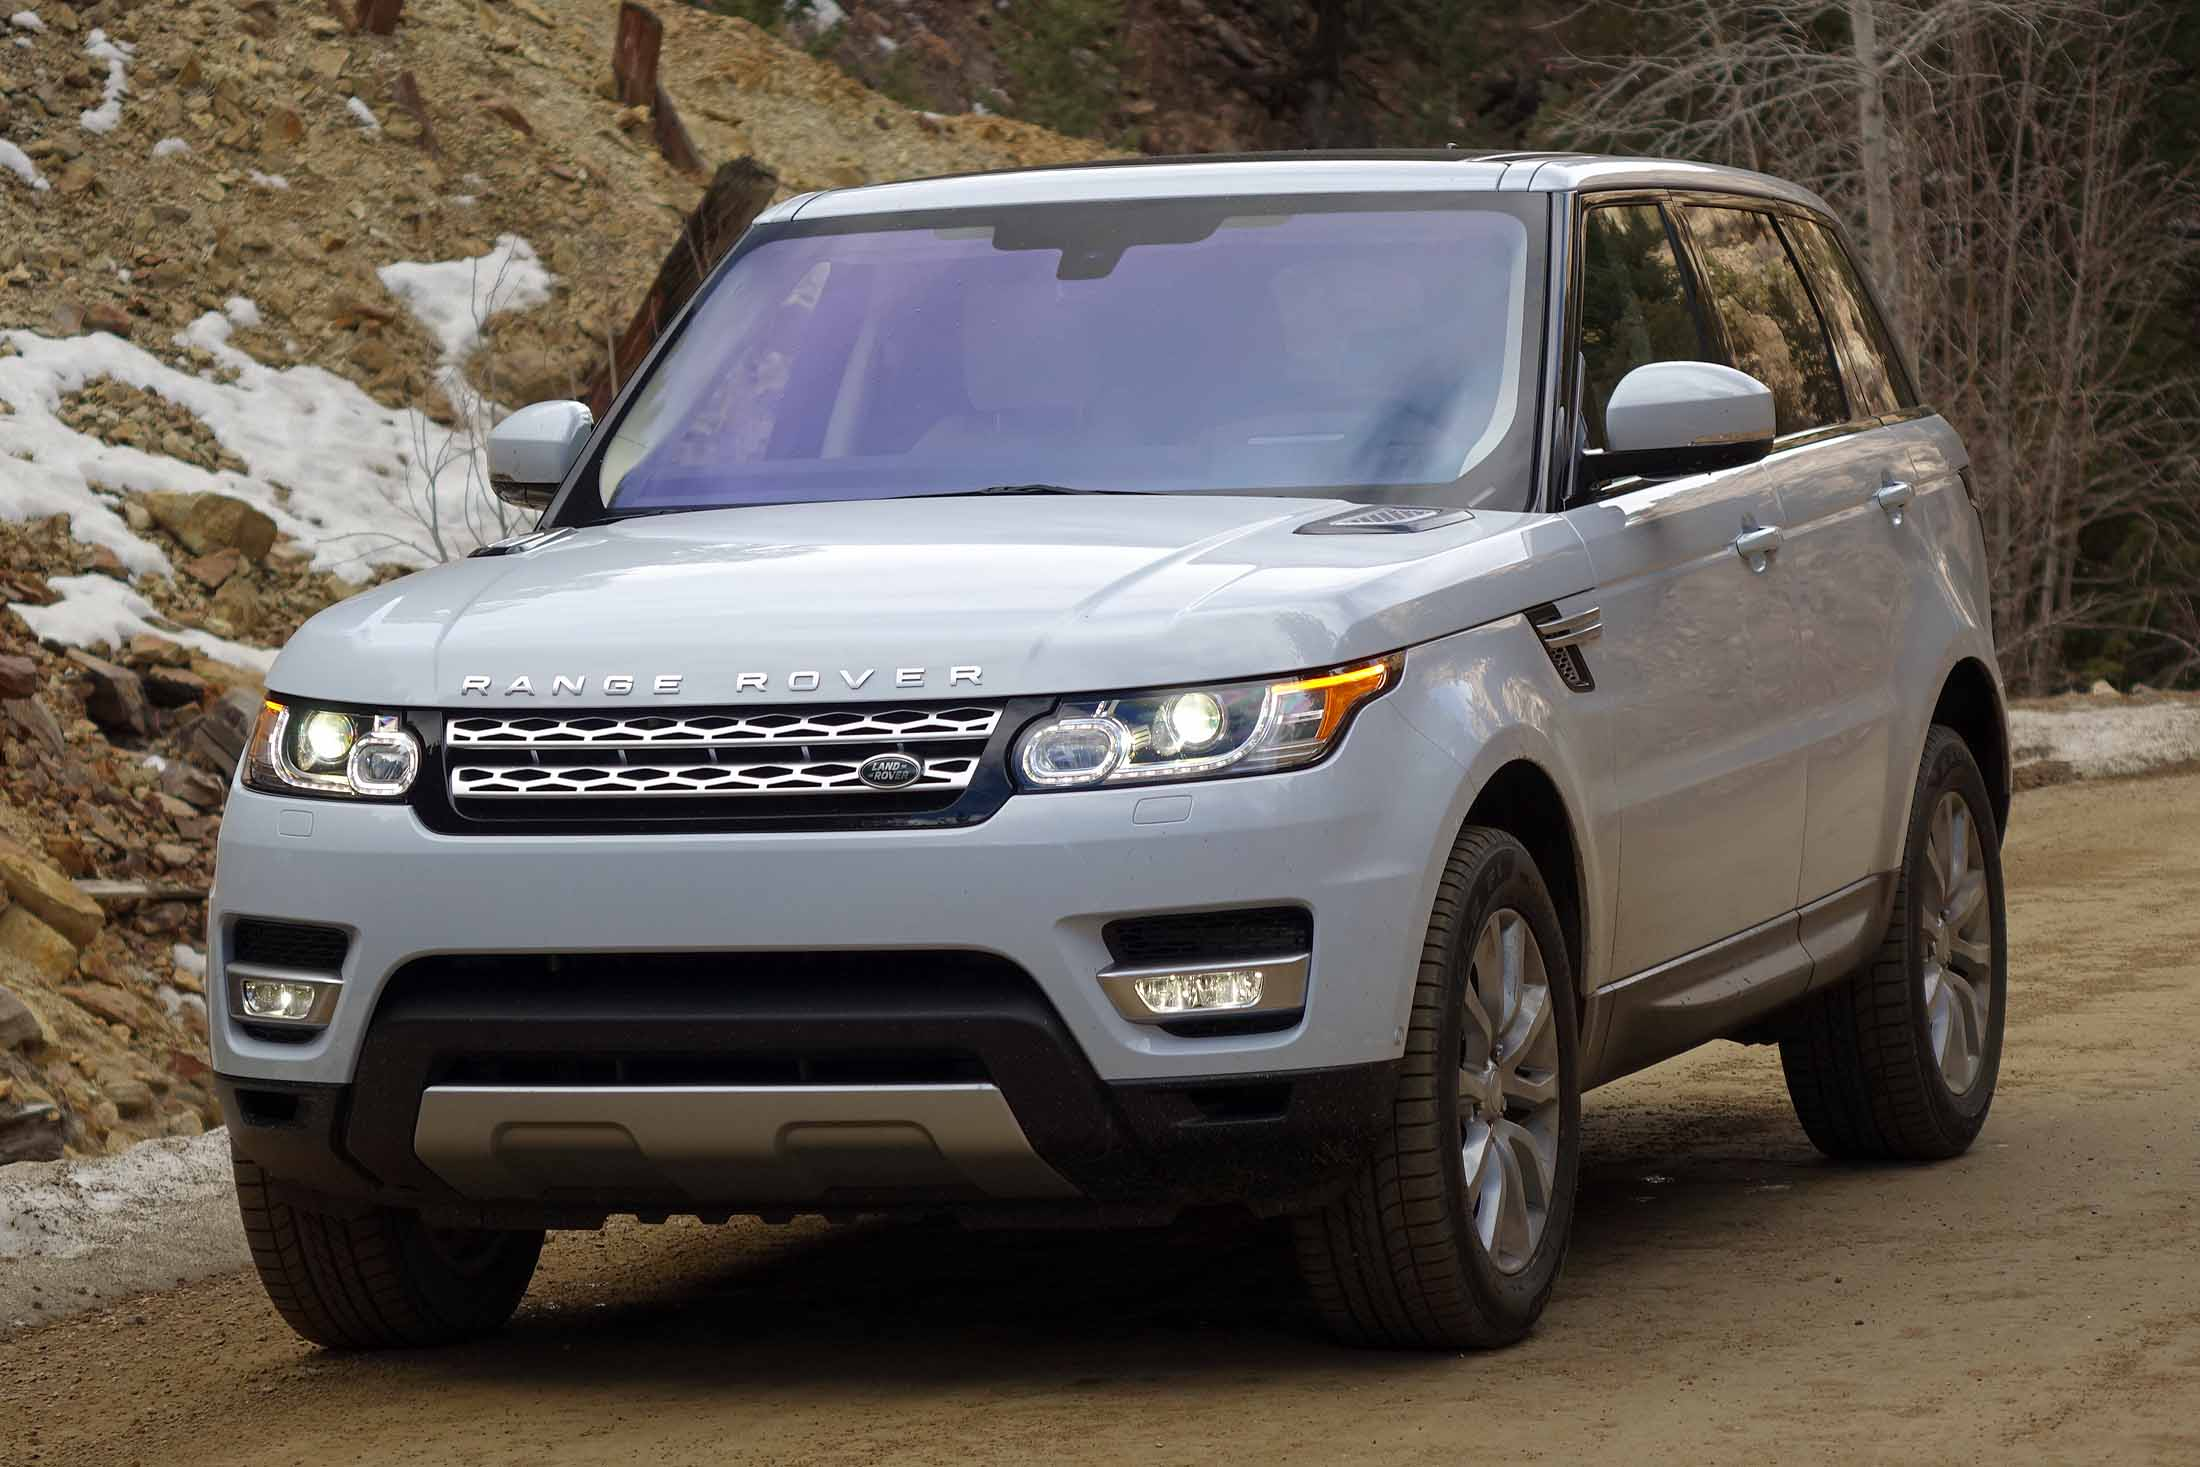 2016 range rover sport diesel vw jobs faraday future bond today 39 s car news. Black Bedroom Furniture Sets. Home Design Ideas